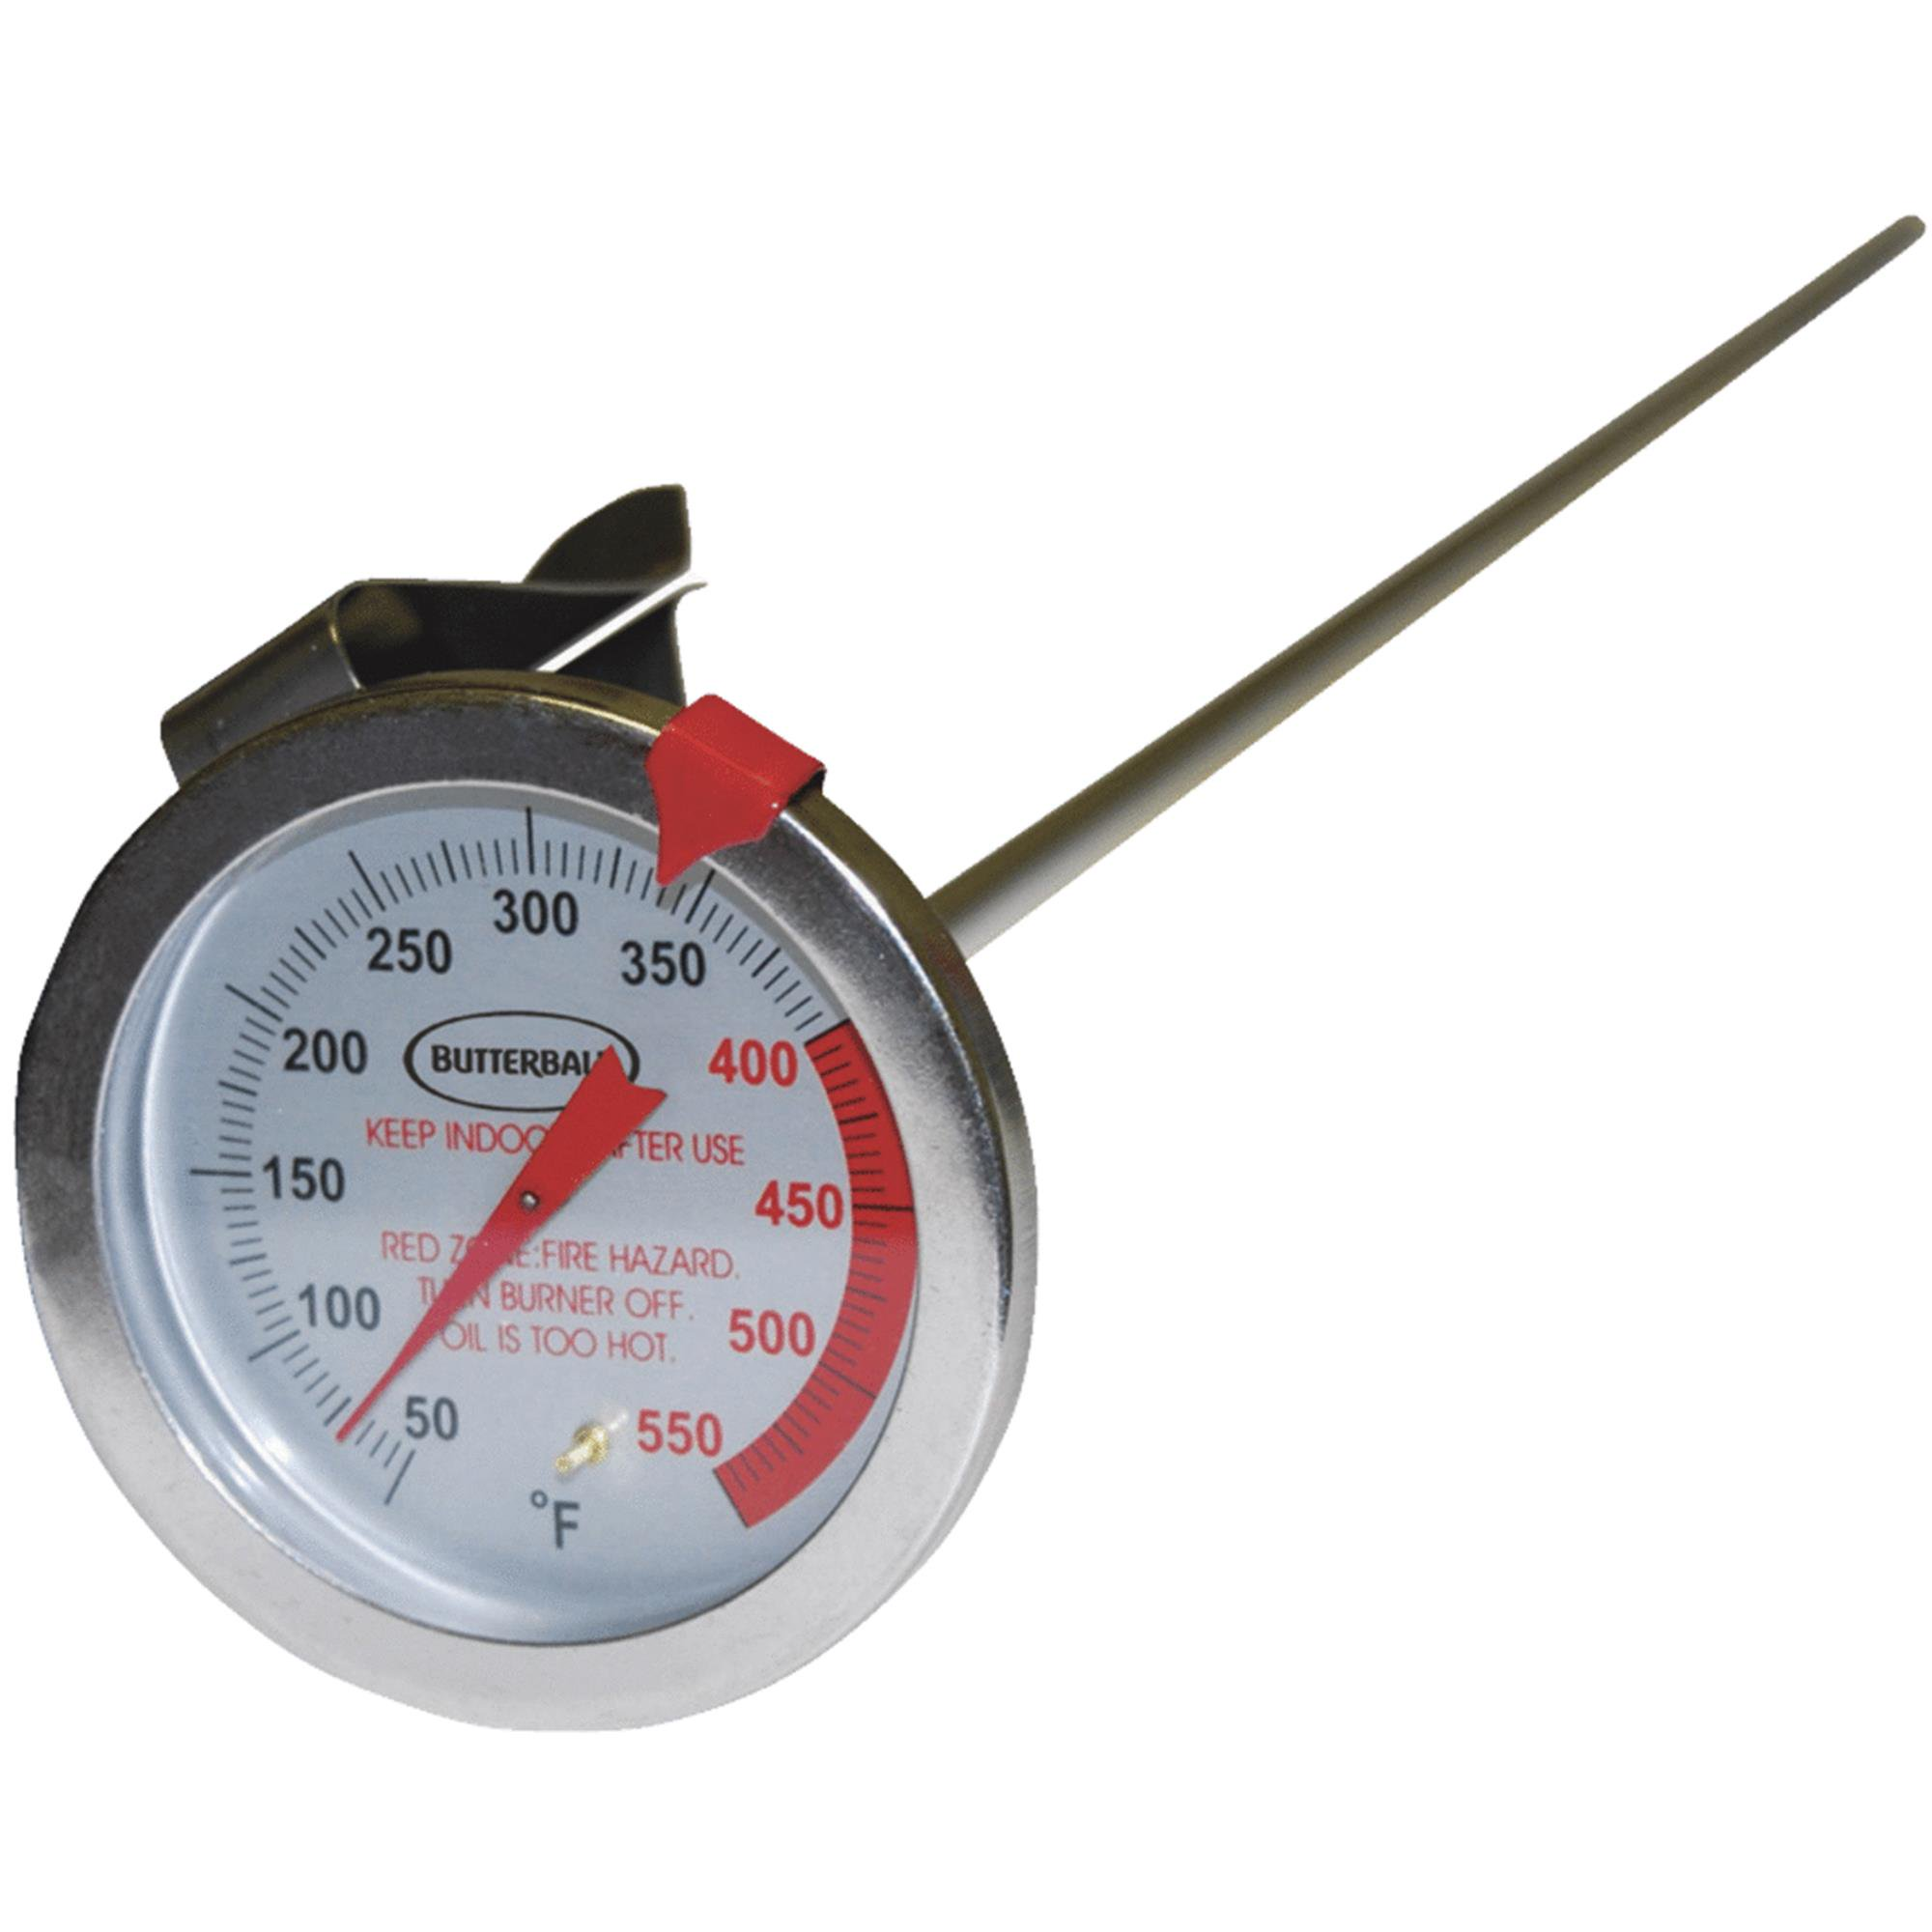 Butterball Kitchen Thermometer